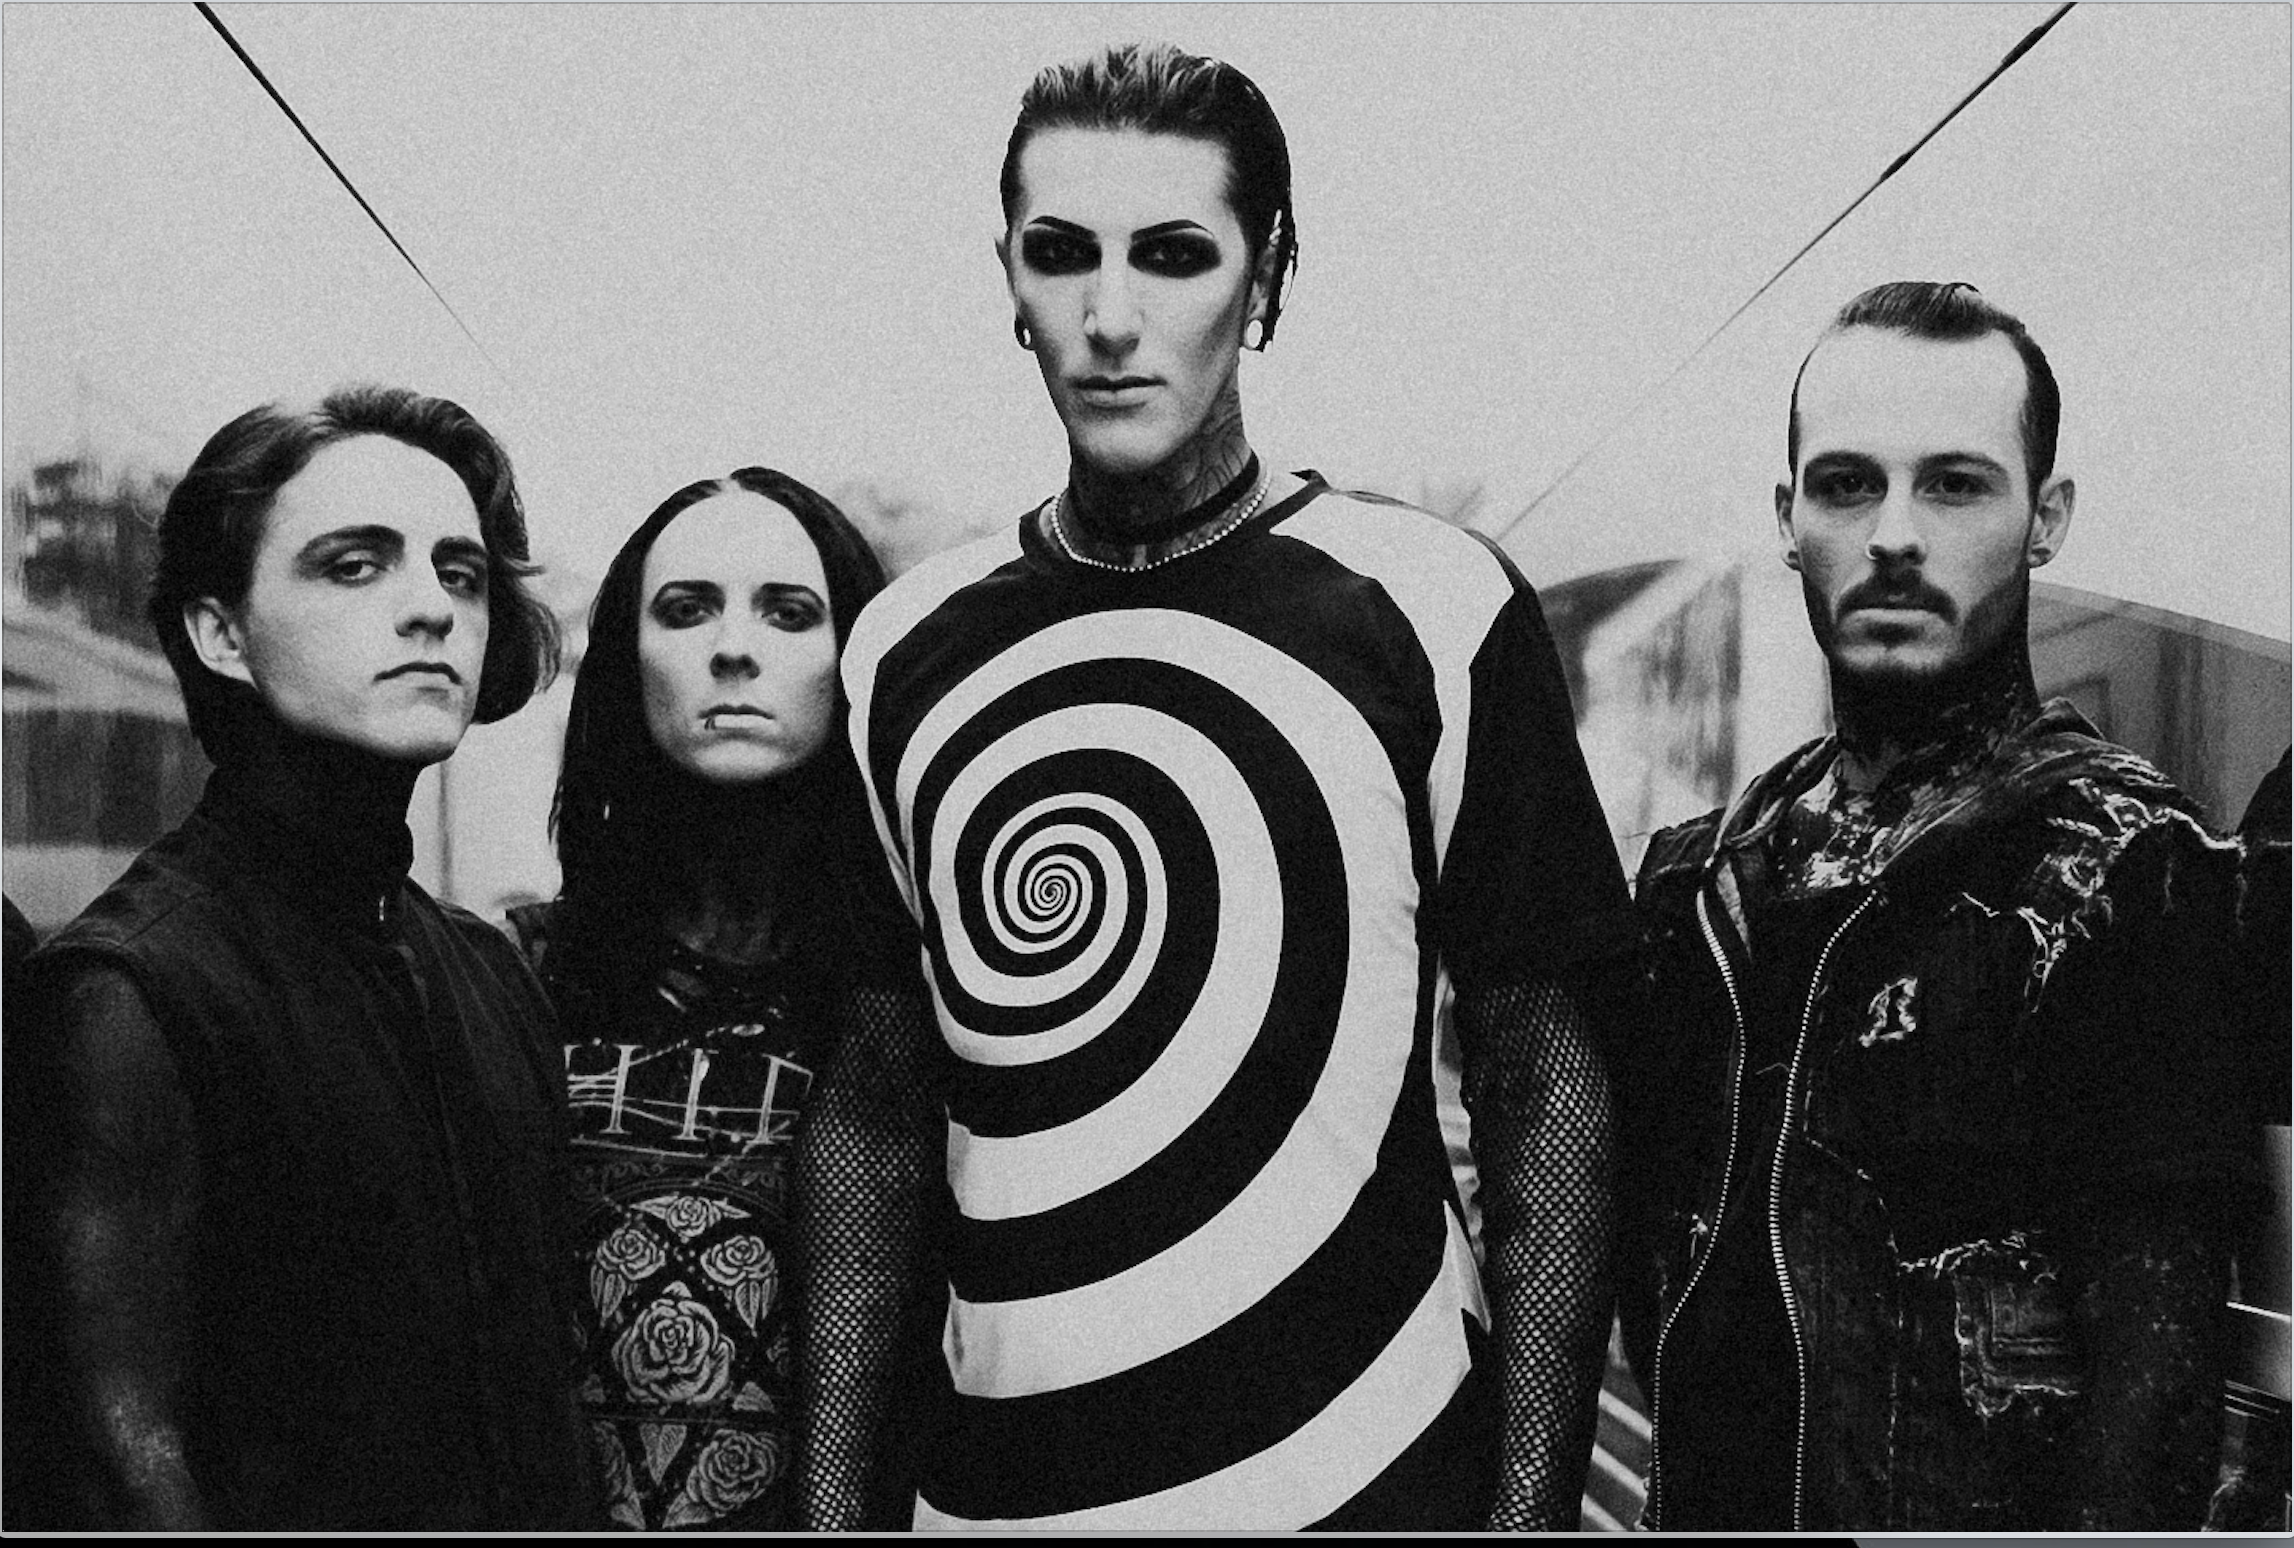 Motionless In White Are Set To Drop A New Album Later This